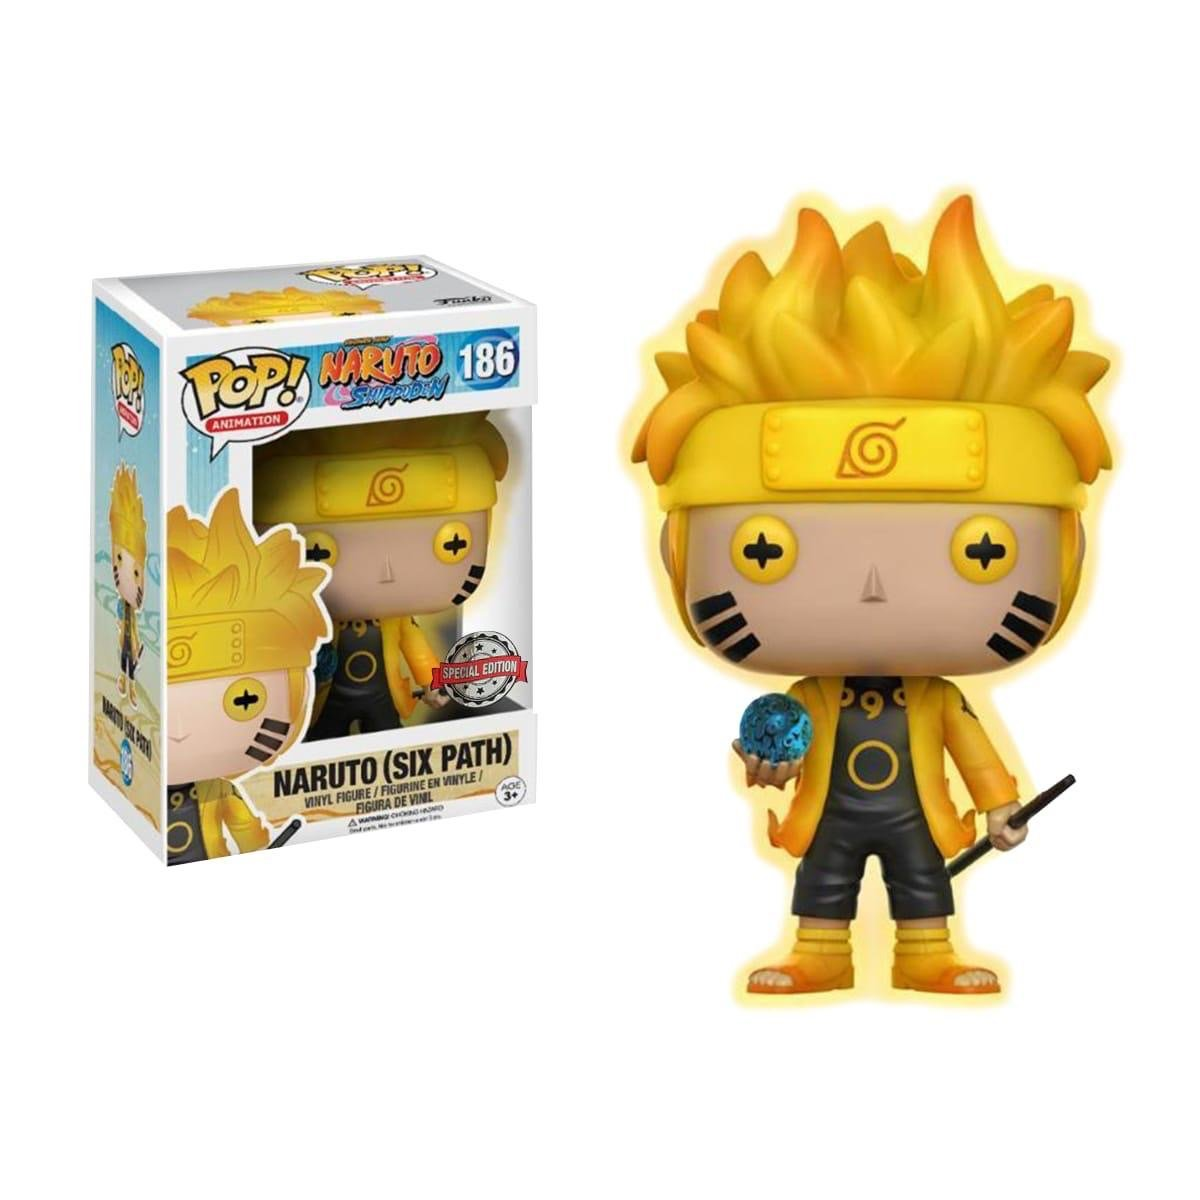 Naruto Shippuden Naruto Six Path Glow in the Dark Exclusive (Not Mint)